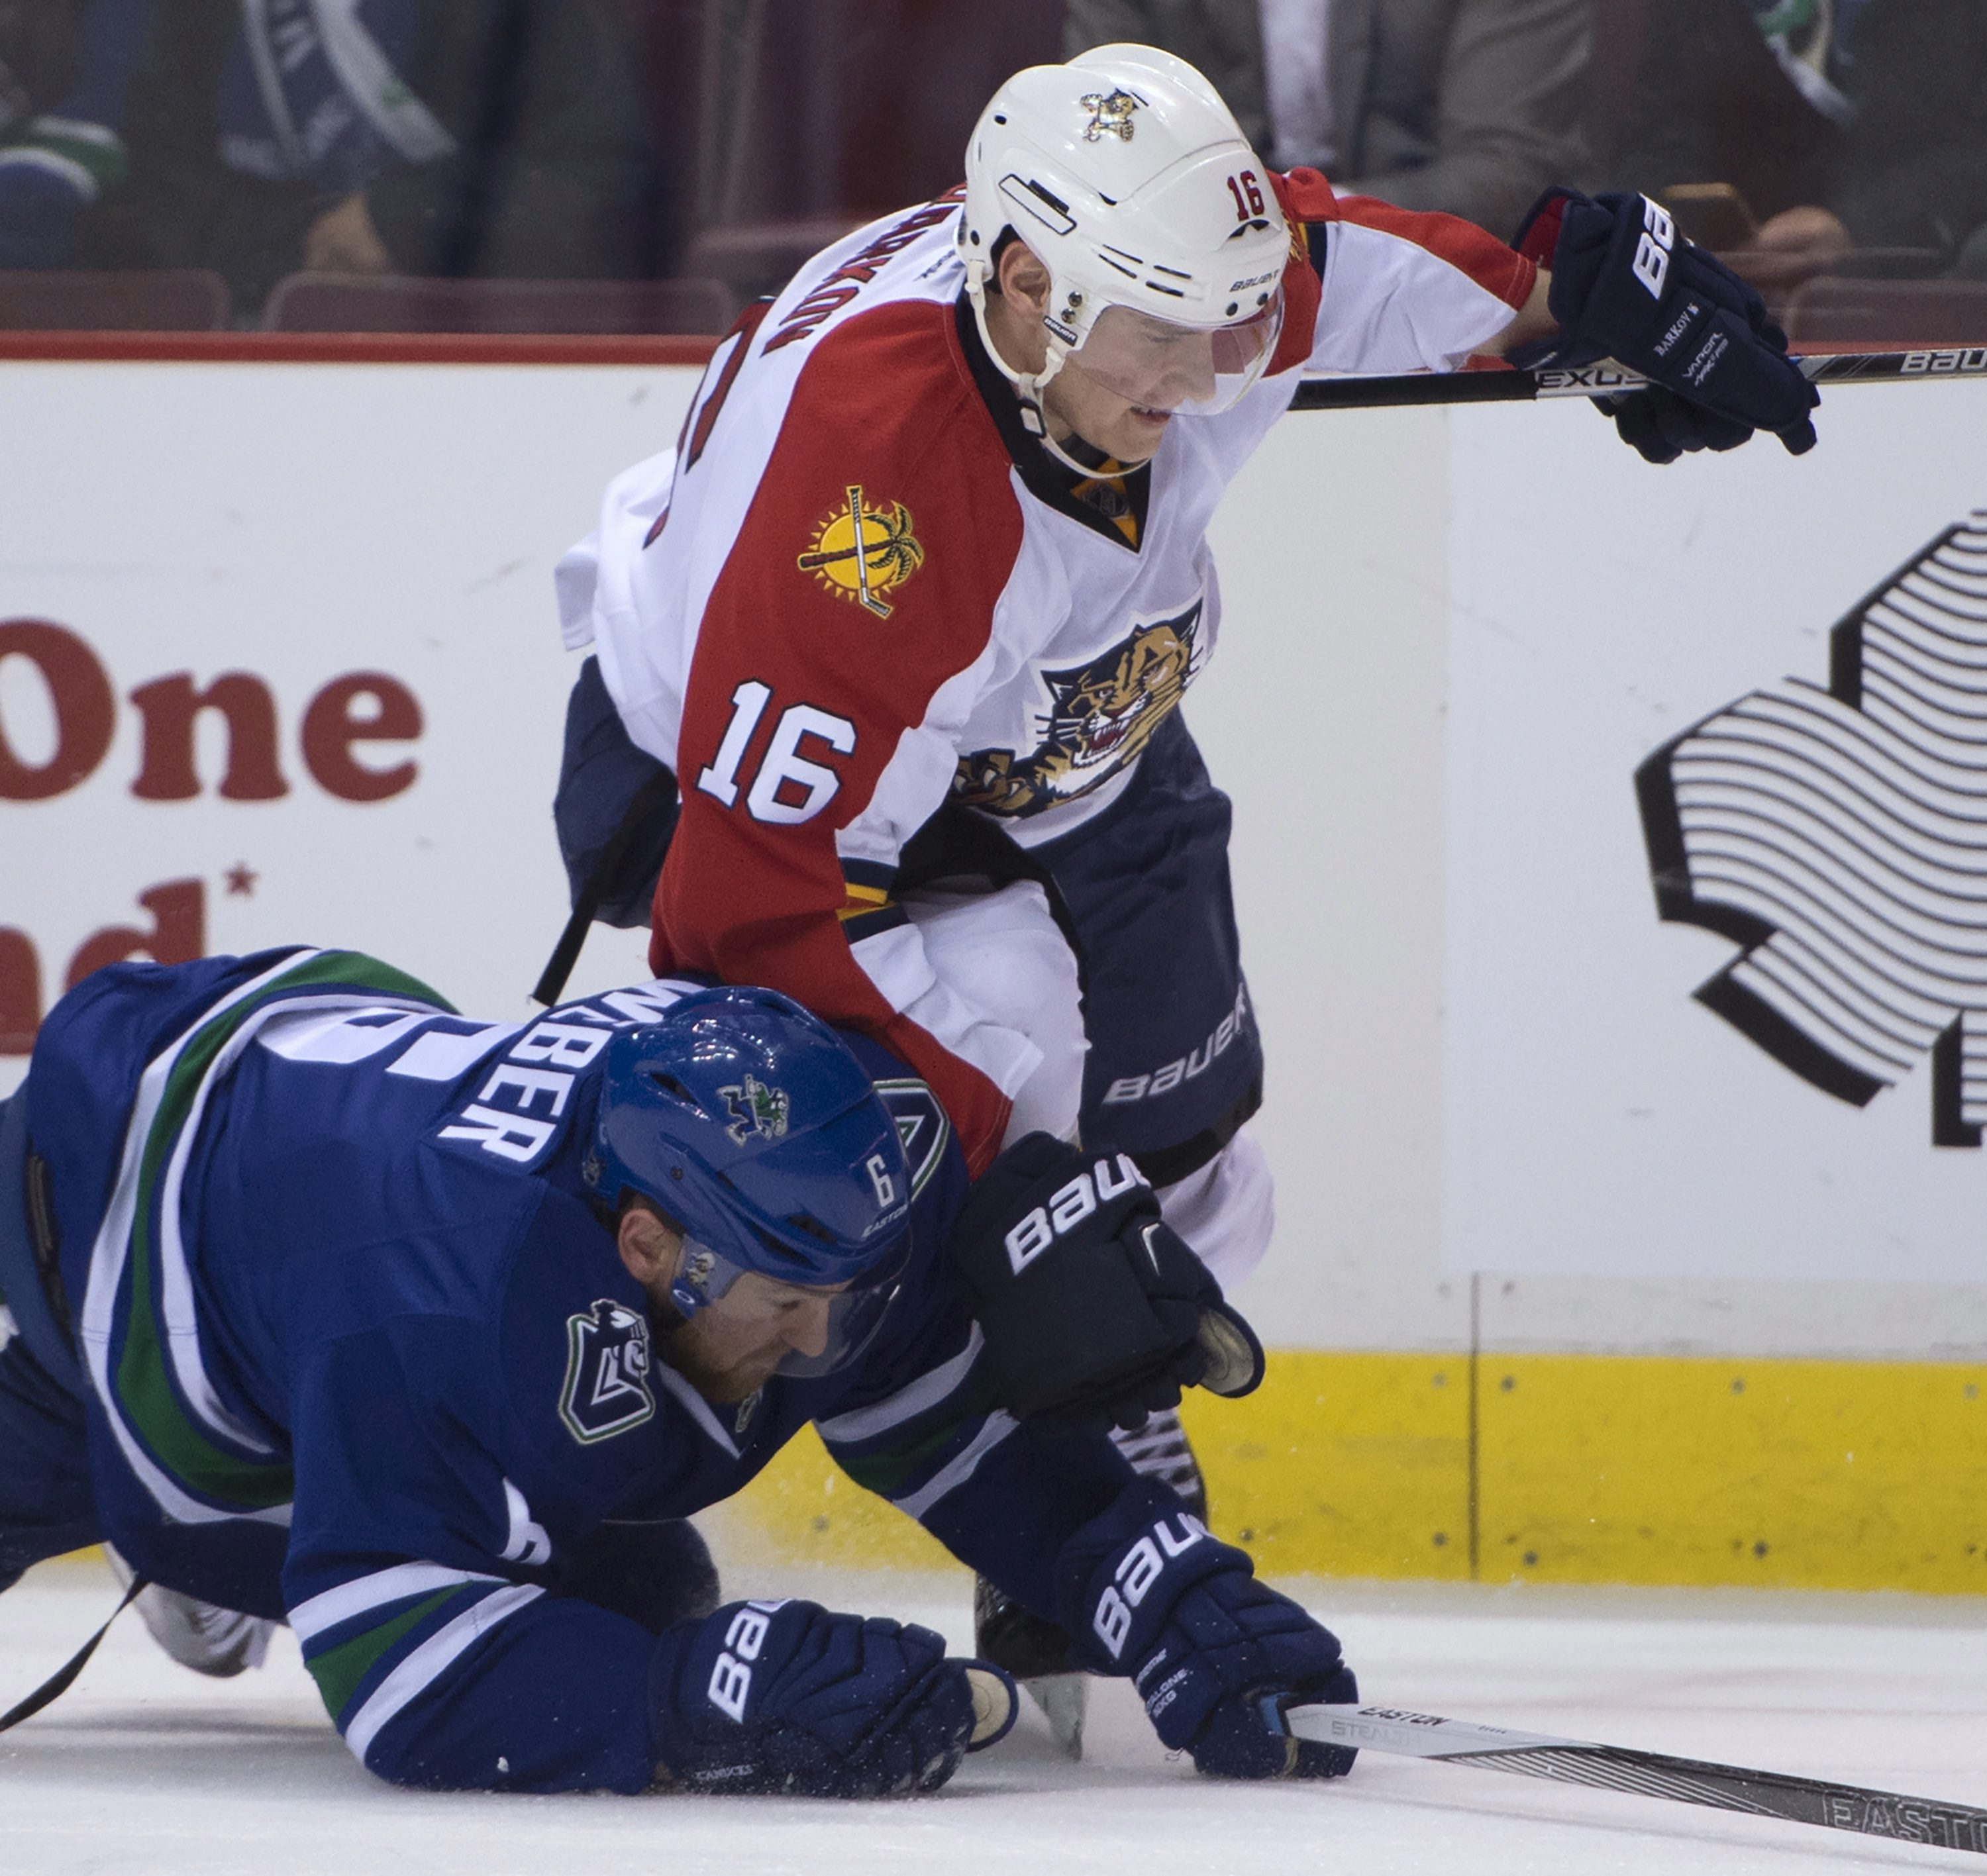 Vancouver Canucks defenseman Yannick Weber (6) fights for control of the puck with Florida Panthers center Aleksander Barkov (16) during first period NHL hockey action in Vancouver, British Columbia, Canada, Monday, Jan. 11, 2016. (Jonathan Hayward/The Ca